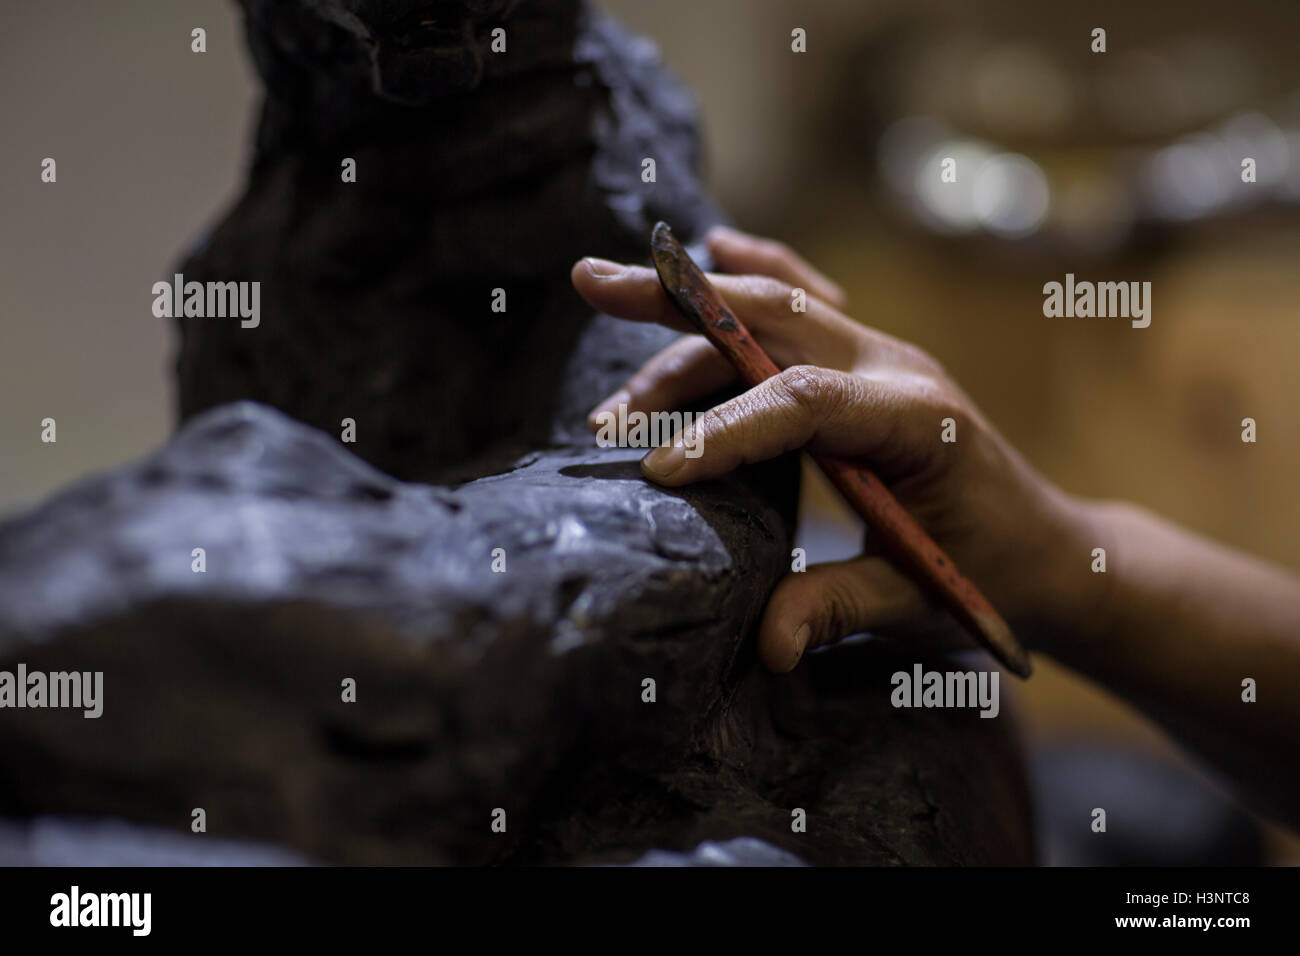 Cropped view of sculptor in artists' studio creating sculpture with hand tool - Stock Image